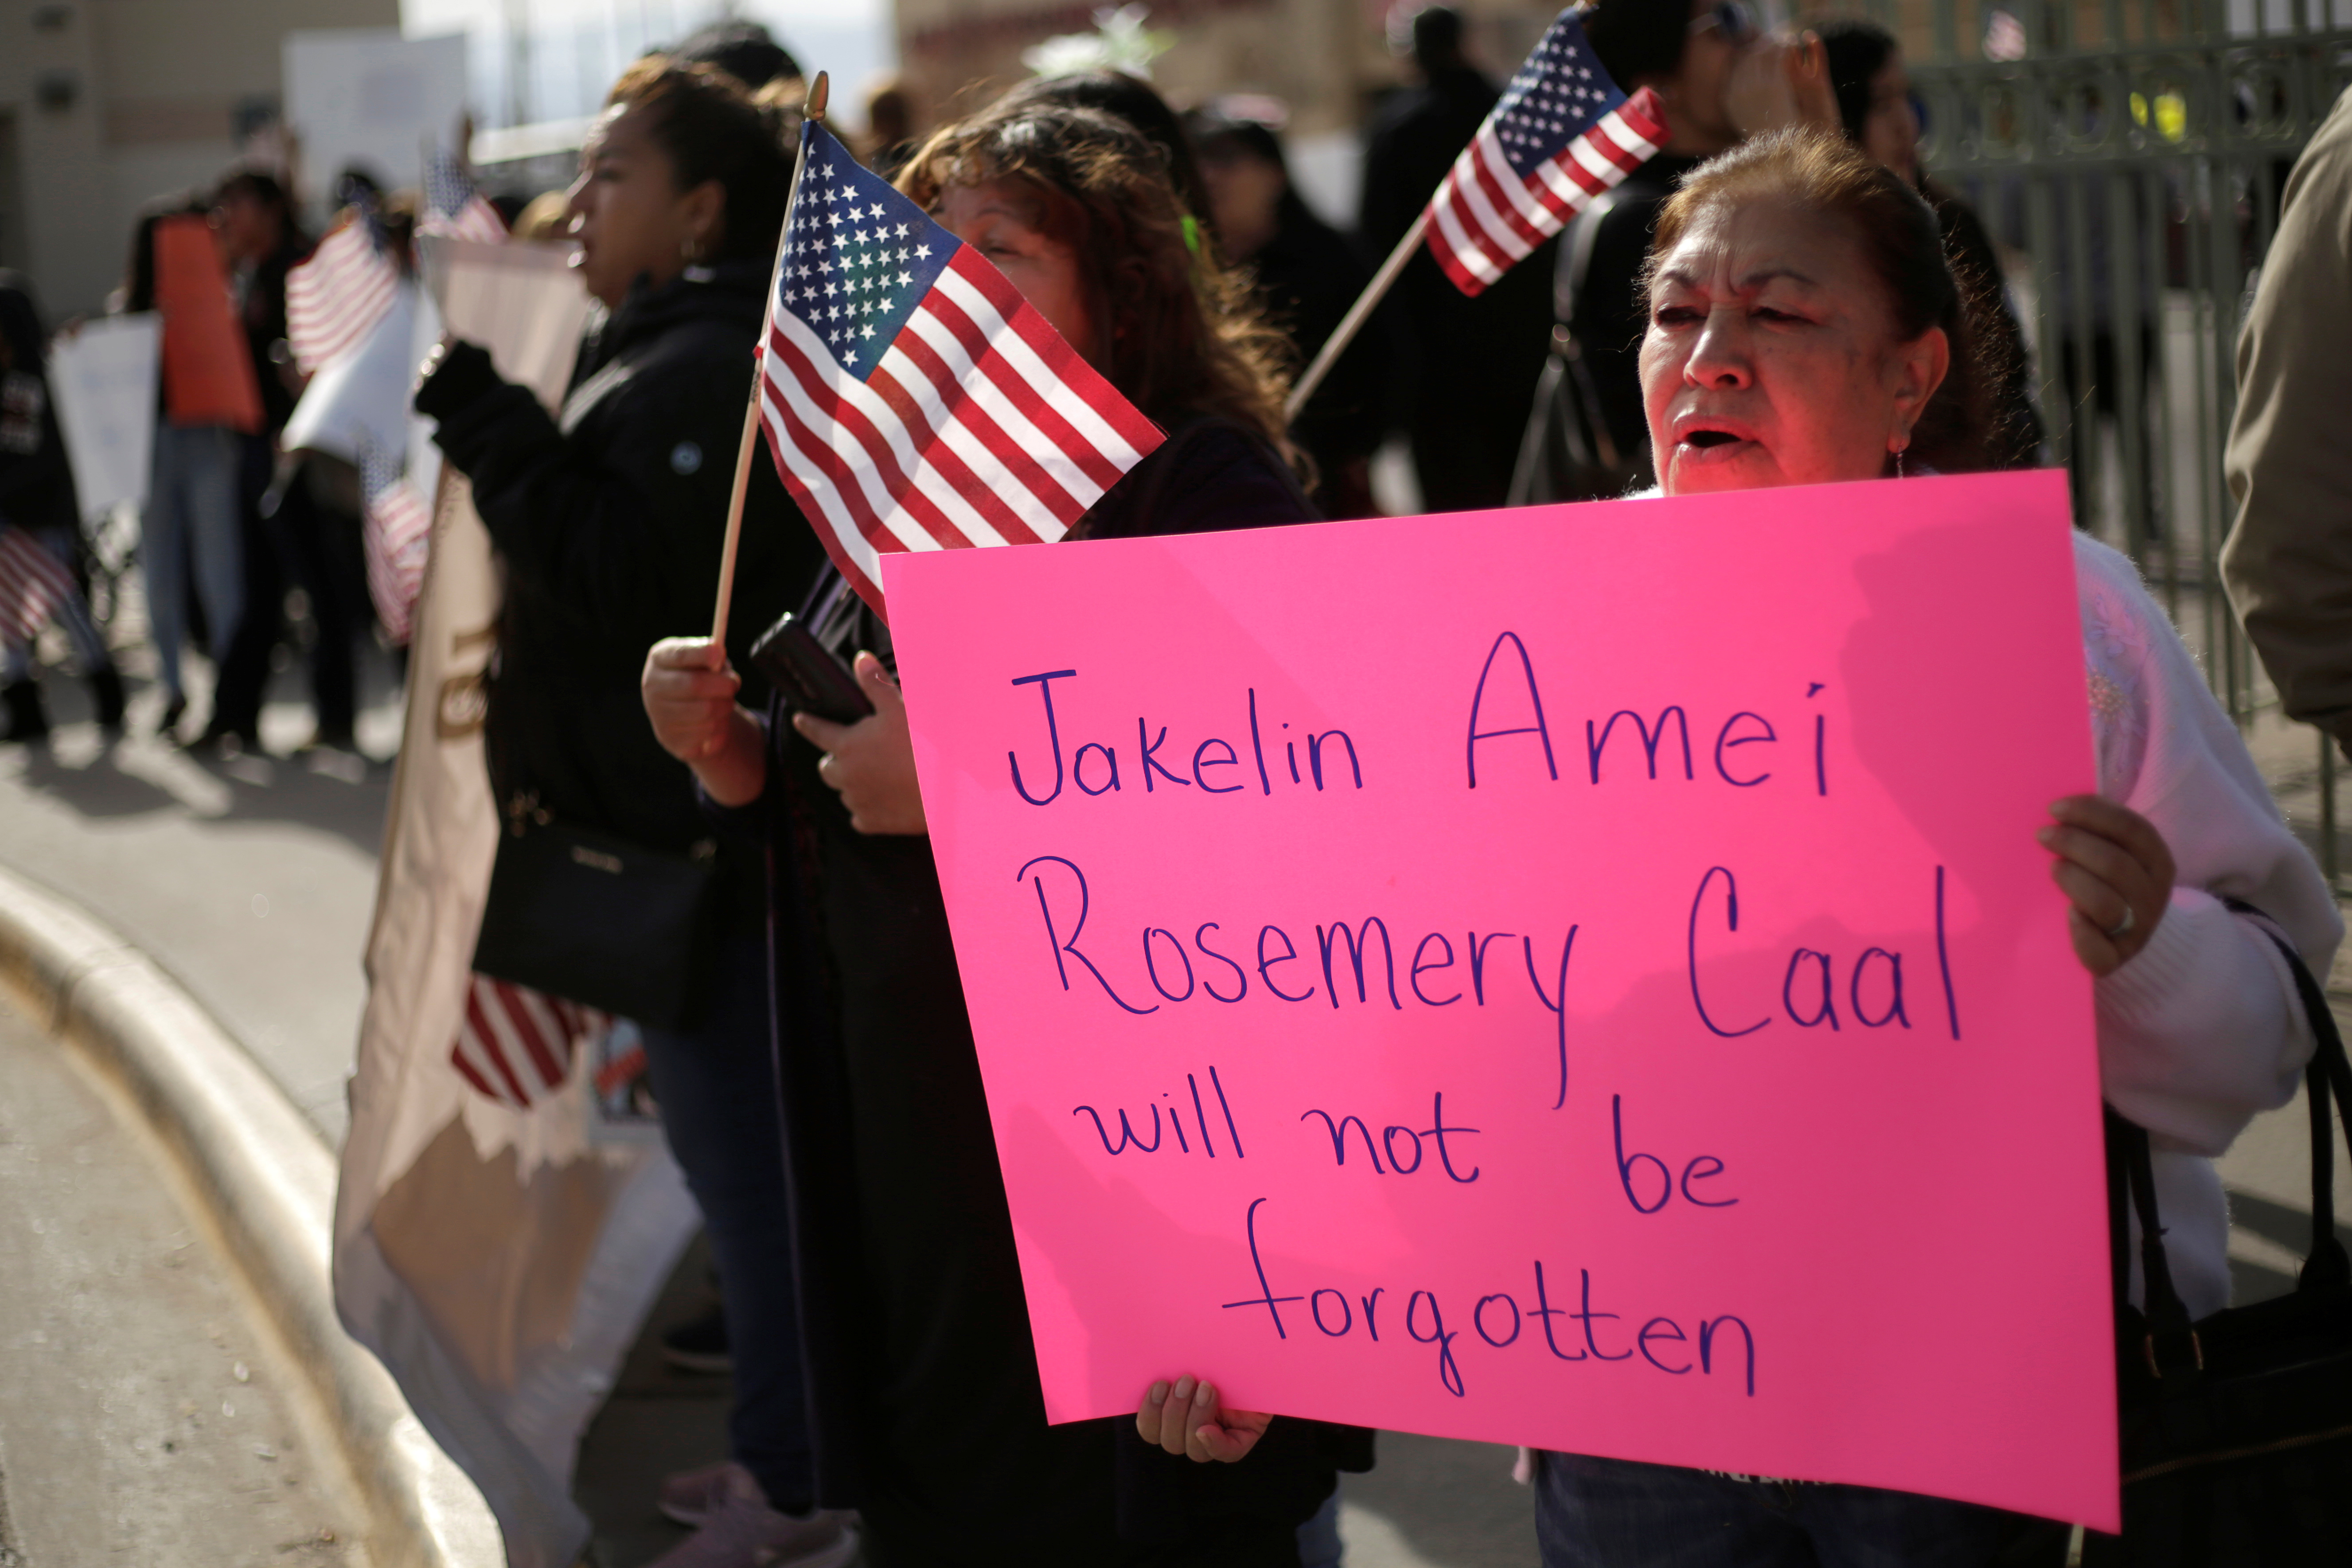 A woman holds a placard for Jakelin Caal Maquin, a 7-year-old Guatemalan girl who died in U.S. custody after crossing illegally from Mexico to the U.S., during a protest held to demand justice for her in El Paso, Texas, Dec. 15, 2018.